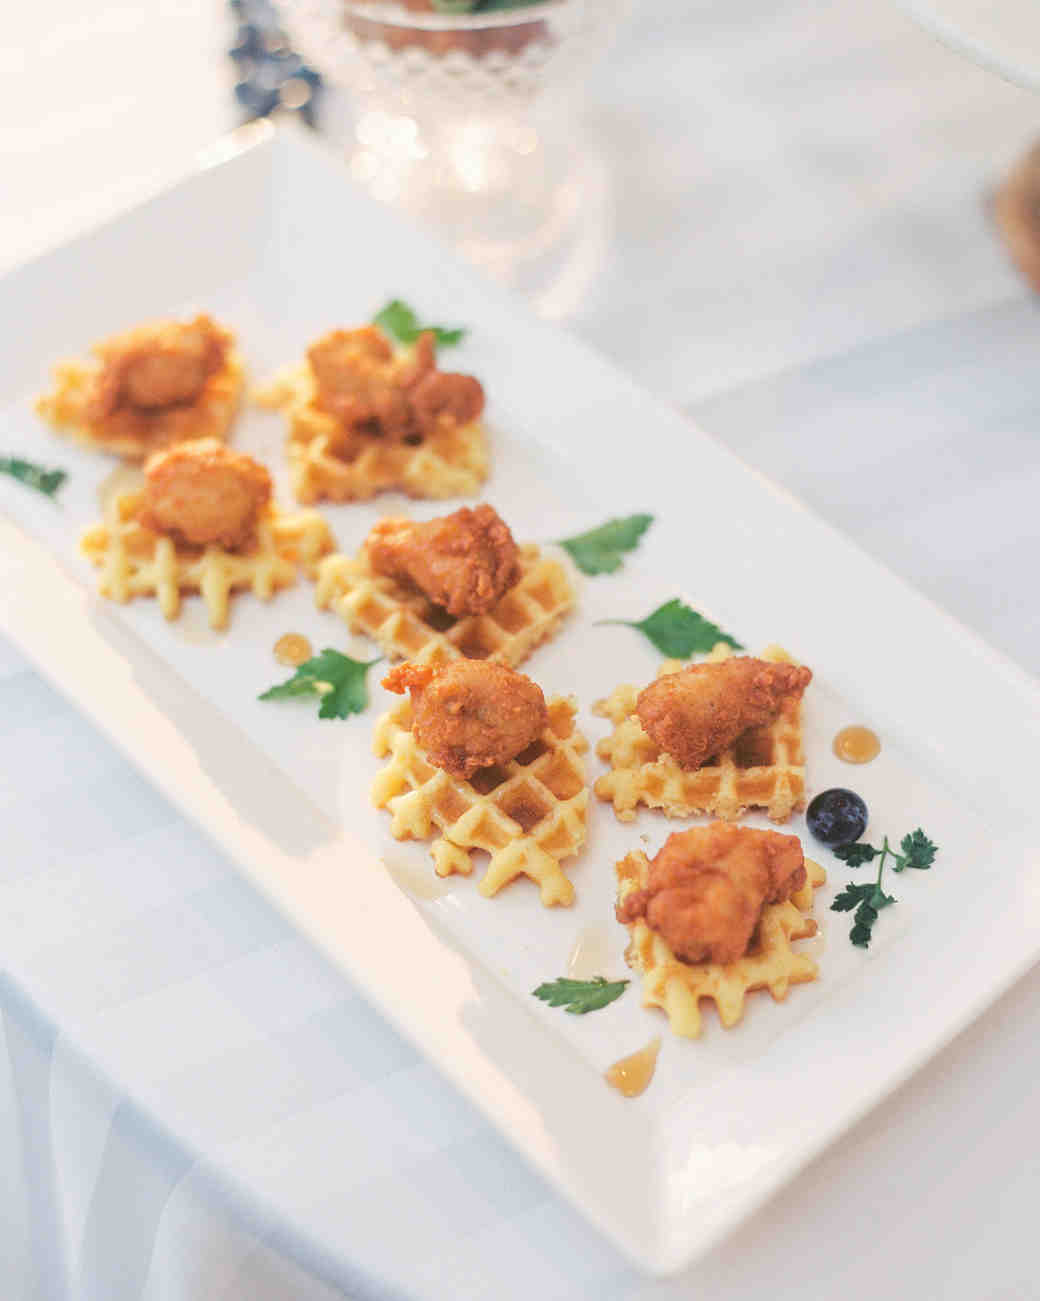 crowd-pleasing engagement party food ideas | martha stewart weddings